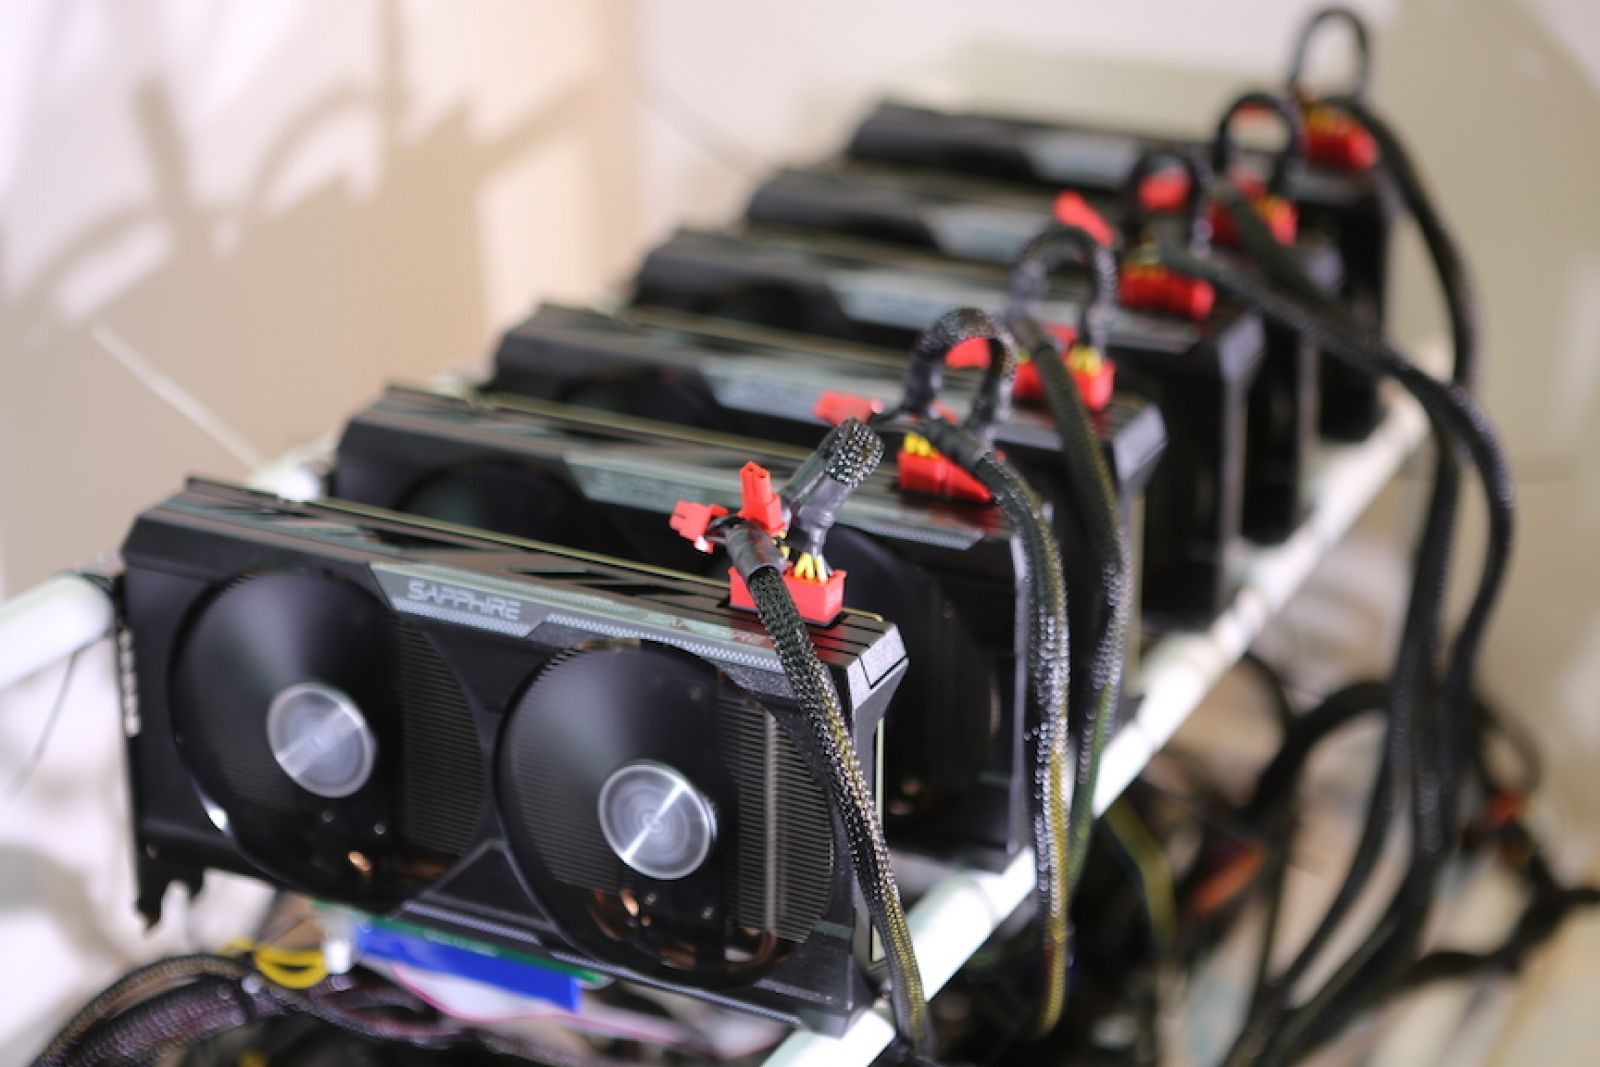 Choosing a graphics card for mining cryptocurrency in 2019